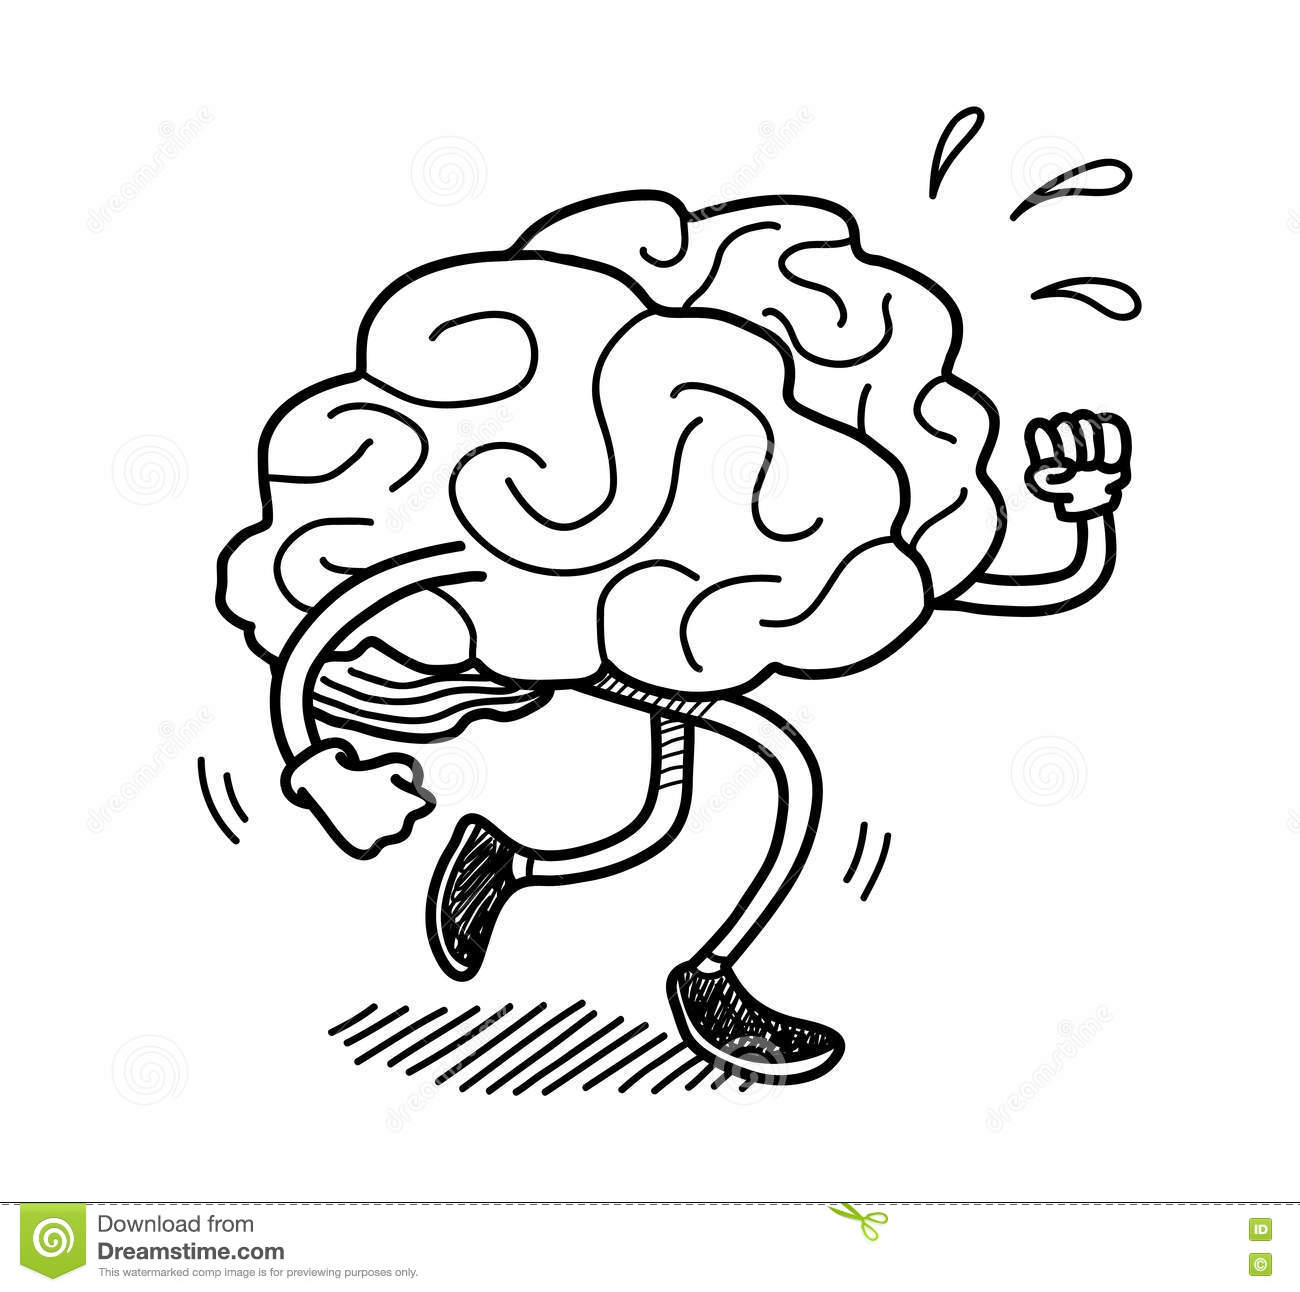 Brain Exercise Doodle Stock Vector Illustration Of